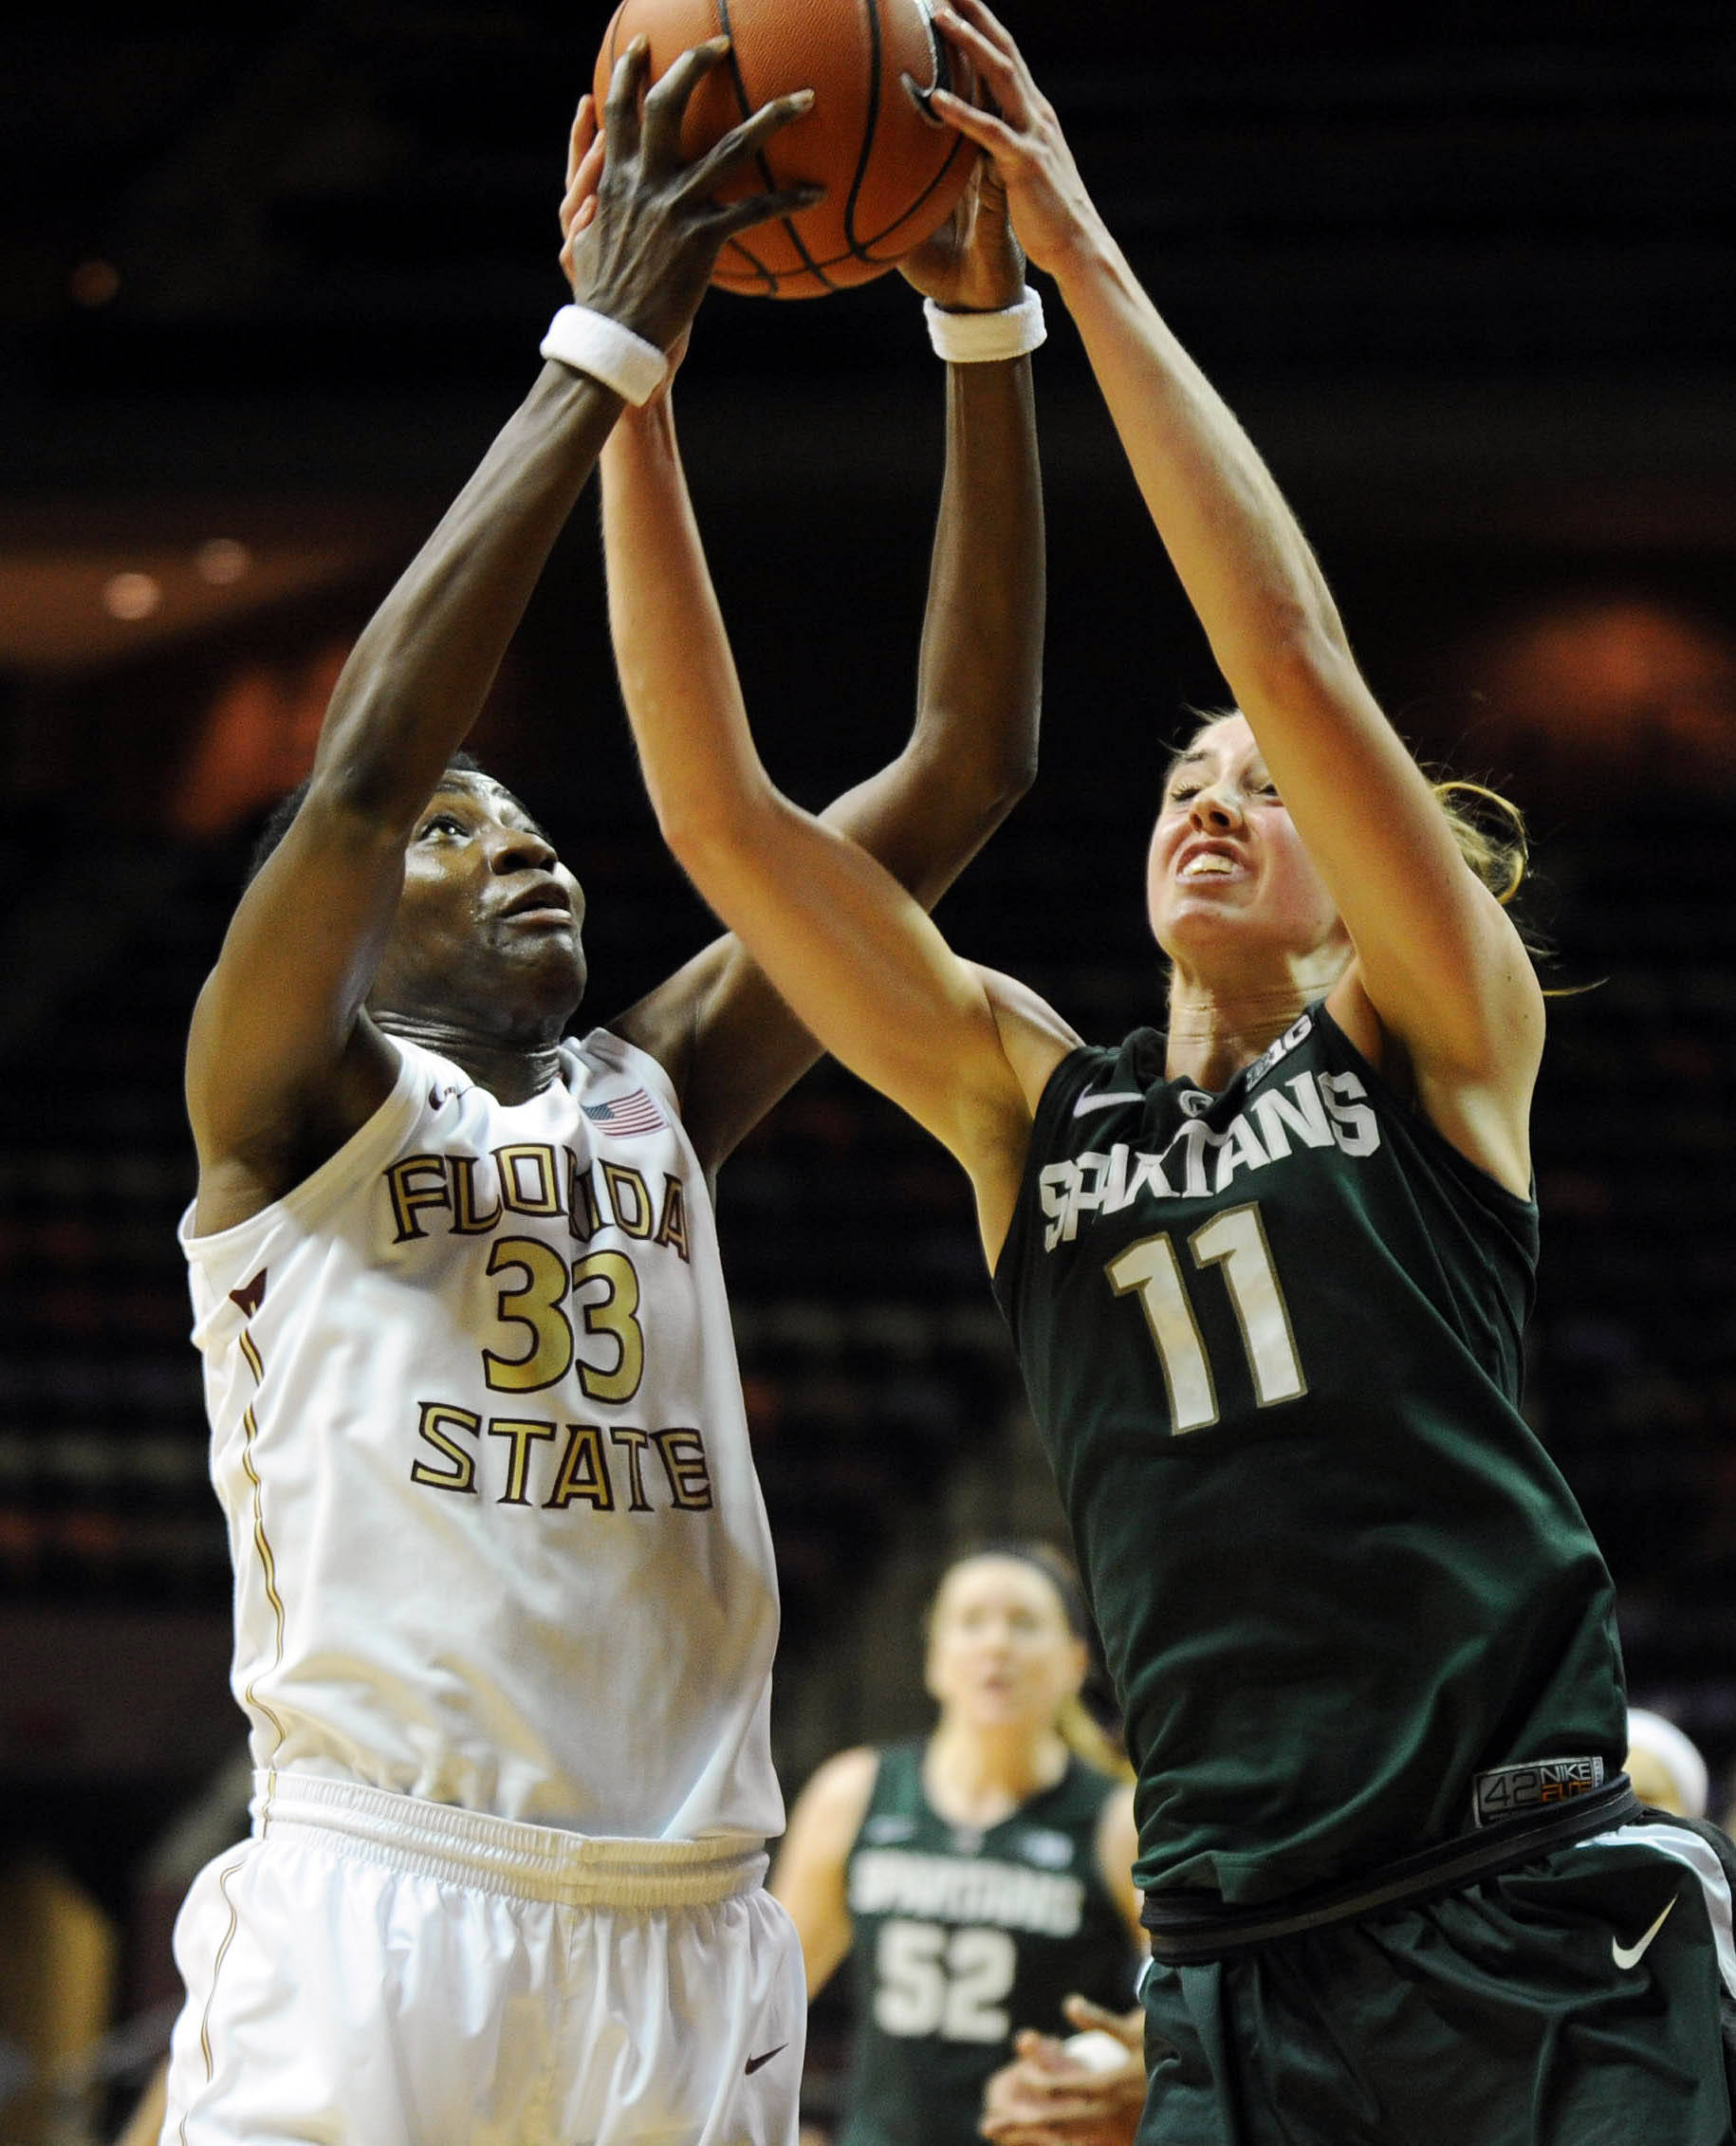 Dec 4, 2013; Tallahassee, FL, USA; Michigan State forward Annalise Pickrel (11) fights for the ball with Florida State Seminoles forward Natasha Howard (33) during the game at the Donald L. Tucker Center (Tallahassee). Mandatory Credit: Melina Vastola-USA TODAY Sports